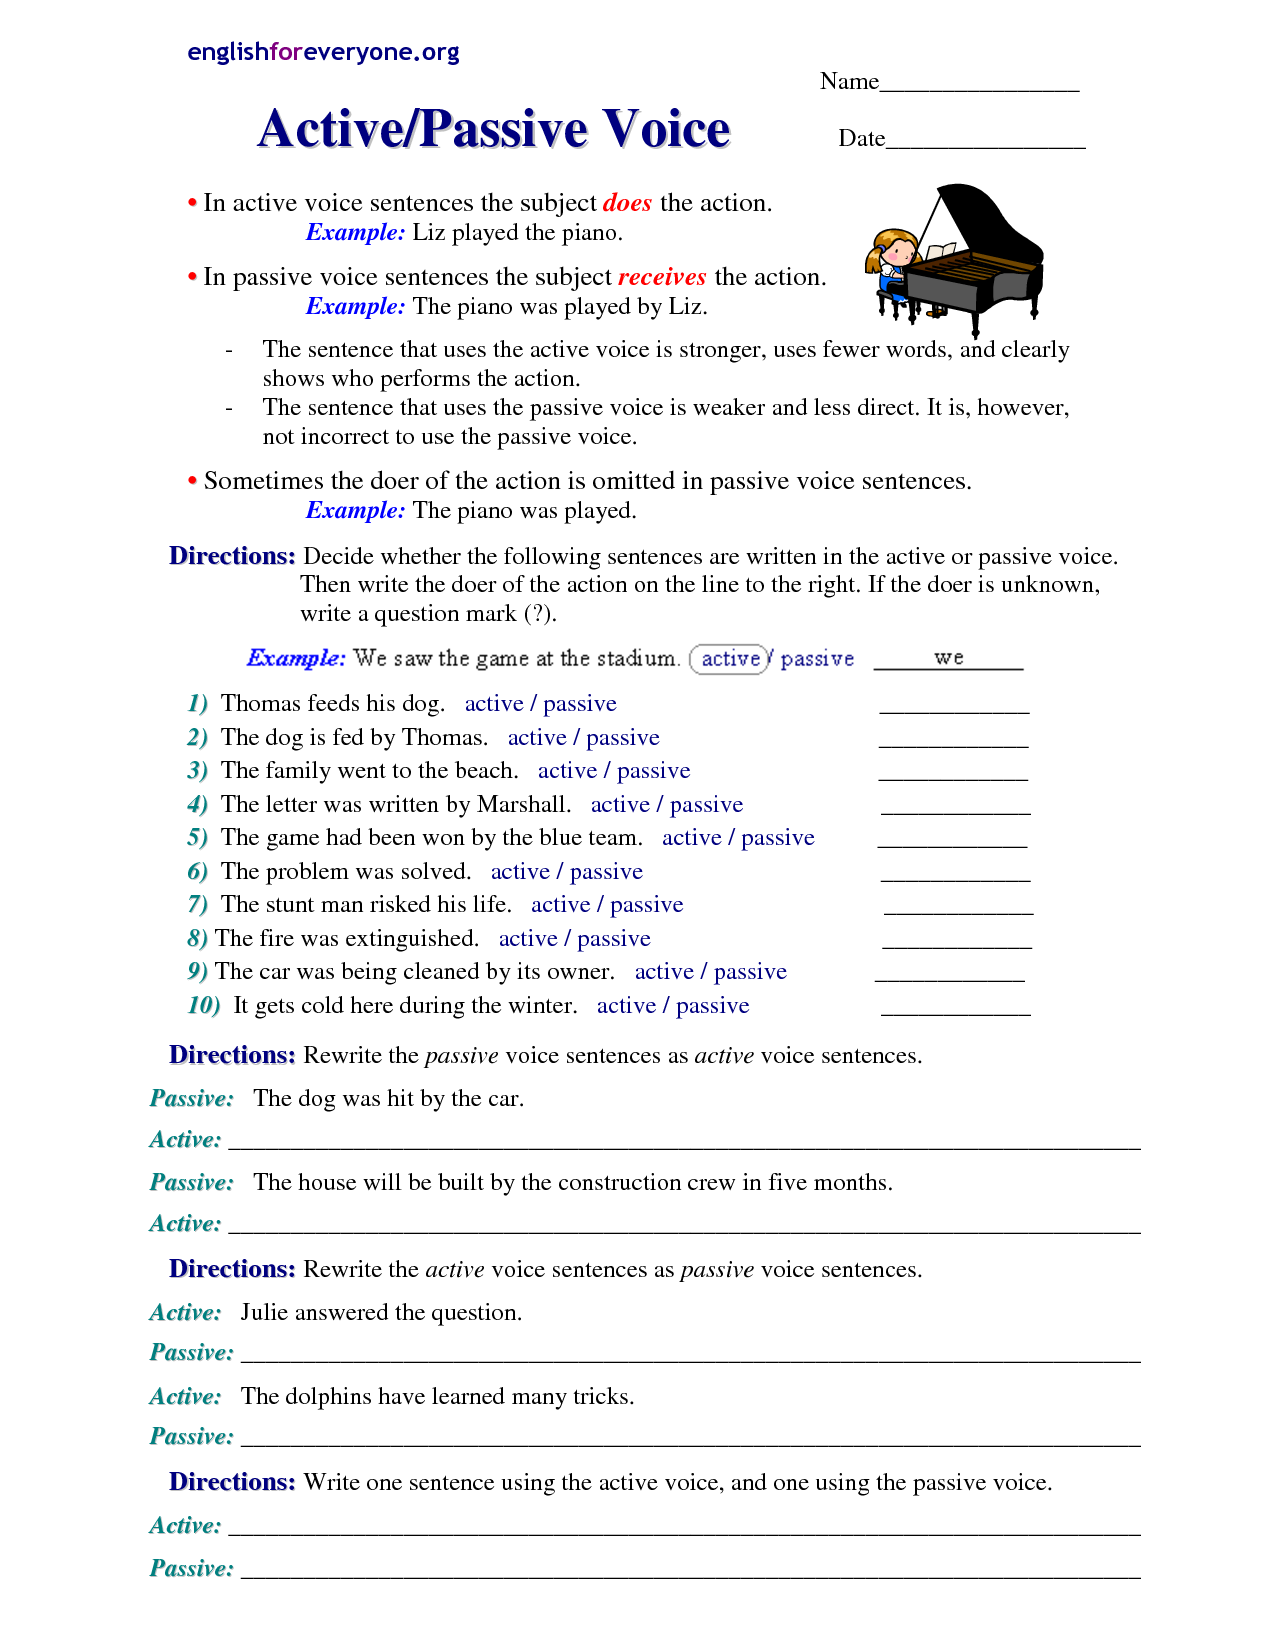 Worksheets Active And Passive Voice Worksheets With Answers active and passive voice worksheet with answers grammar videos exercises voice